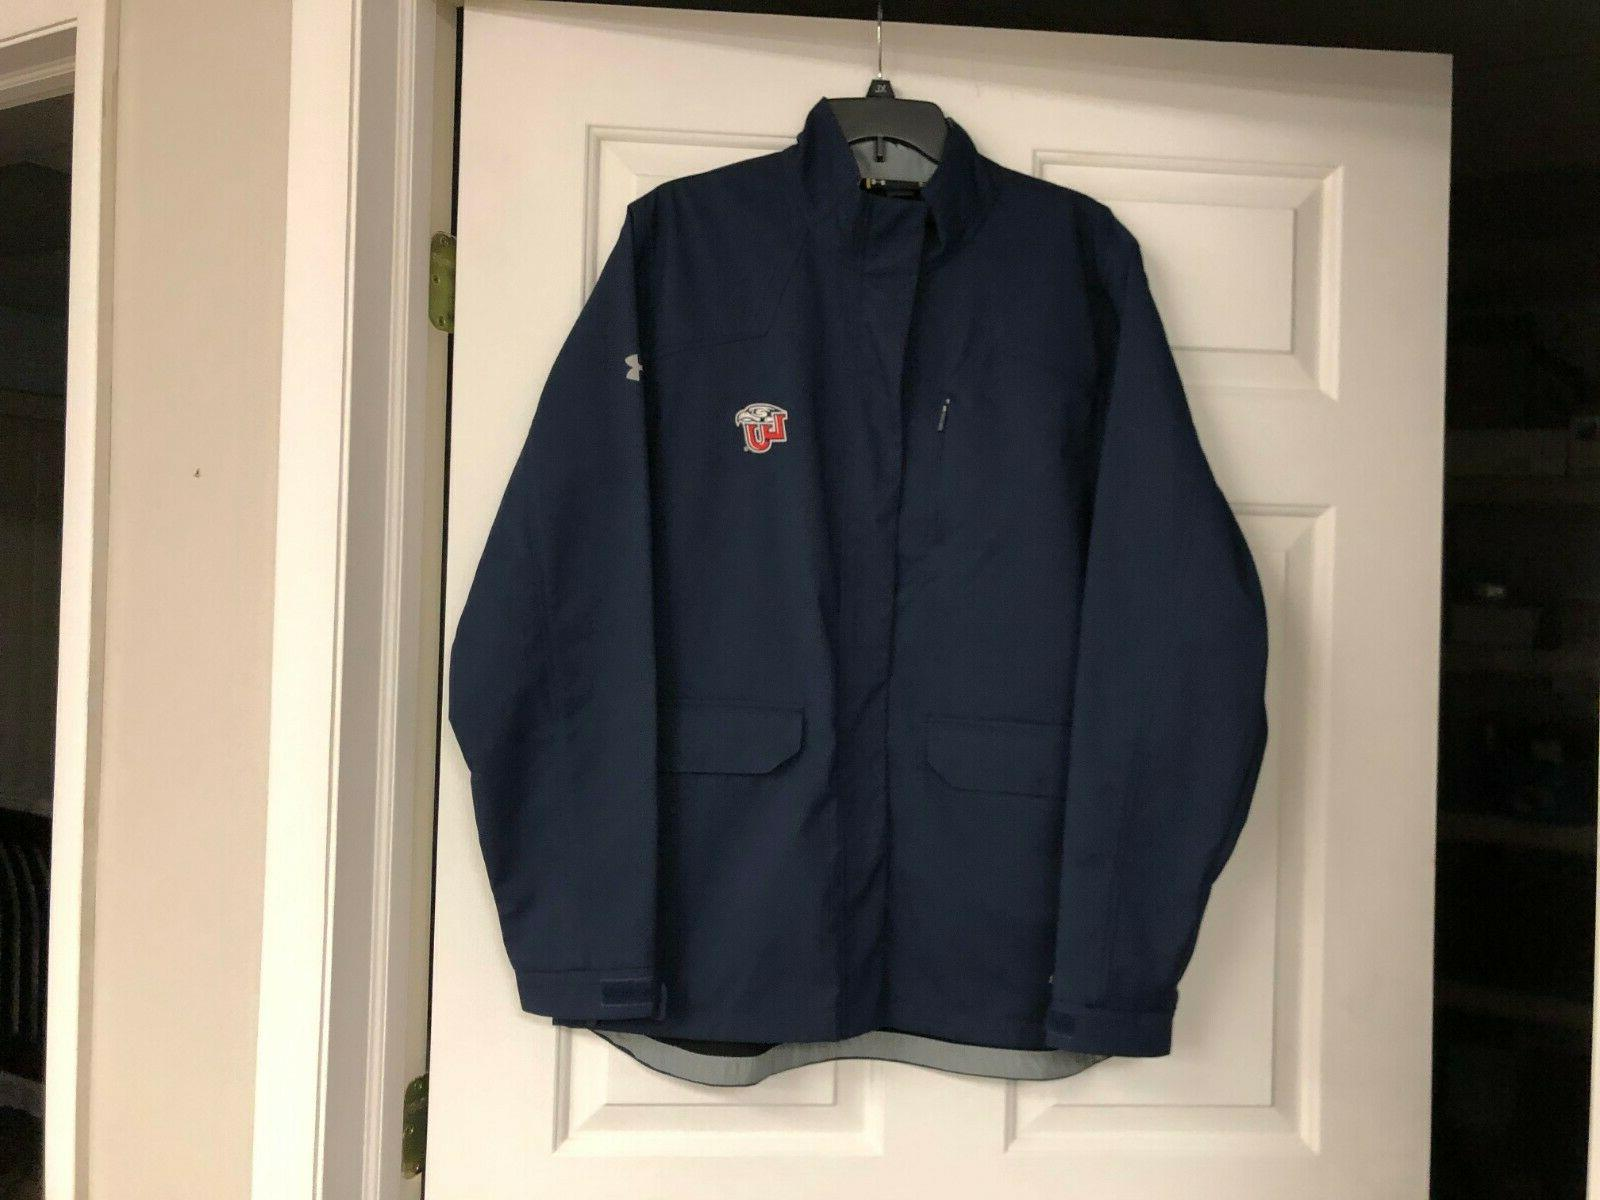 storm liberty university navy jacket coat men